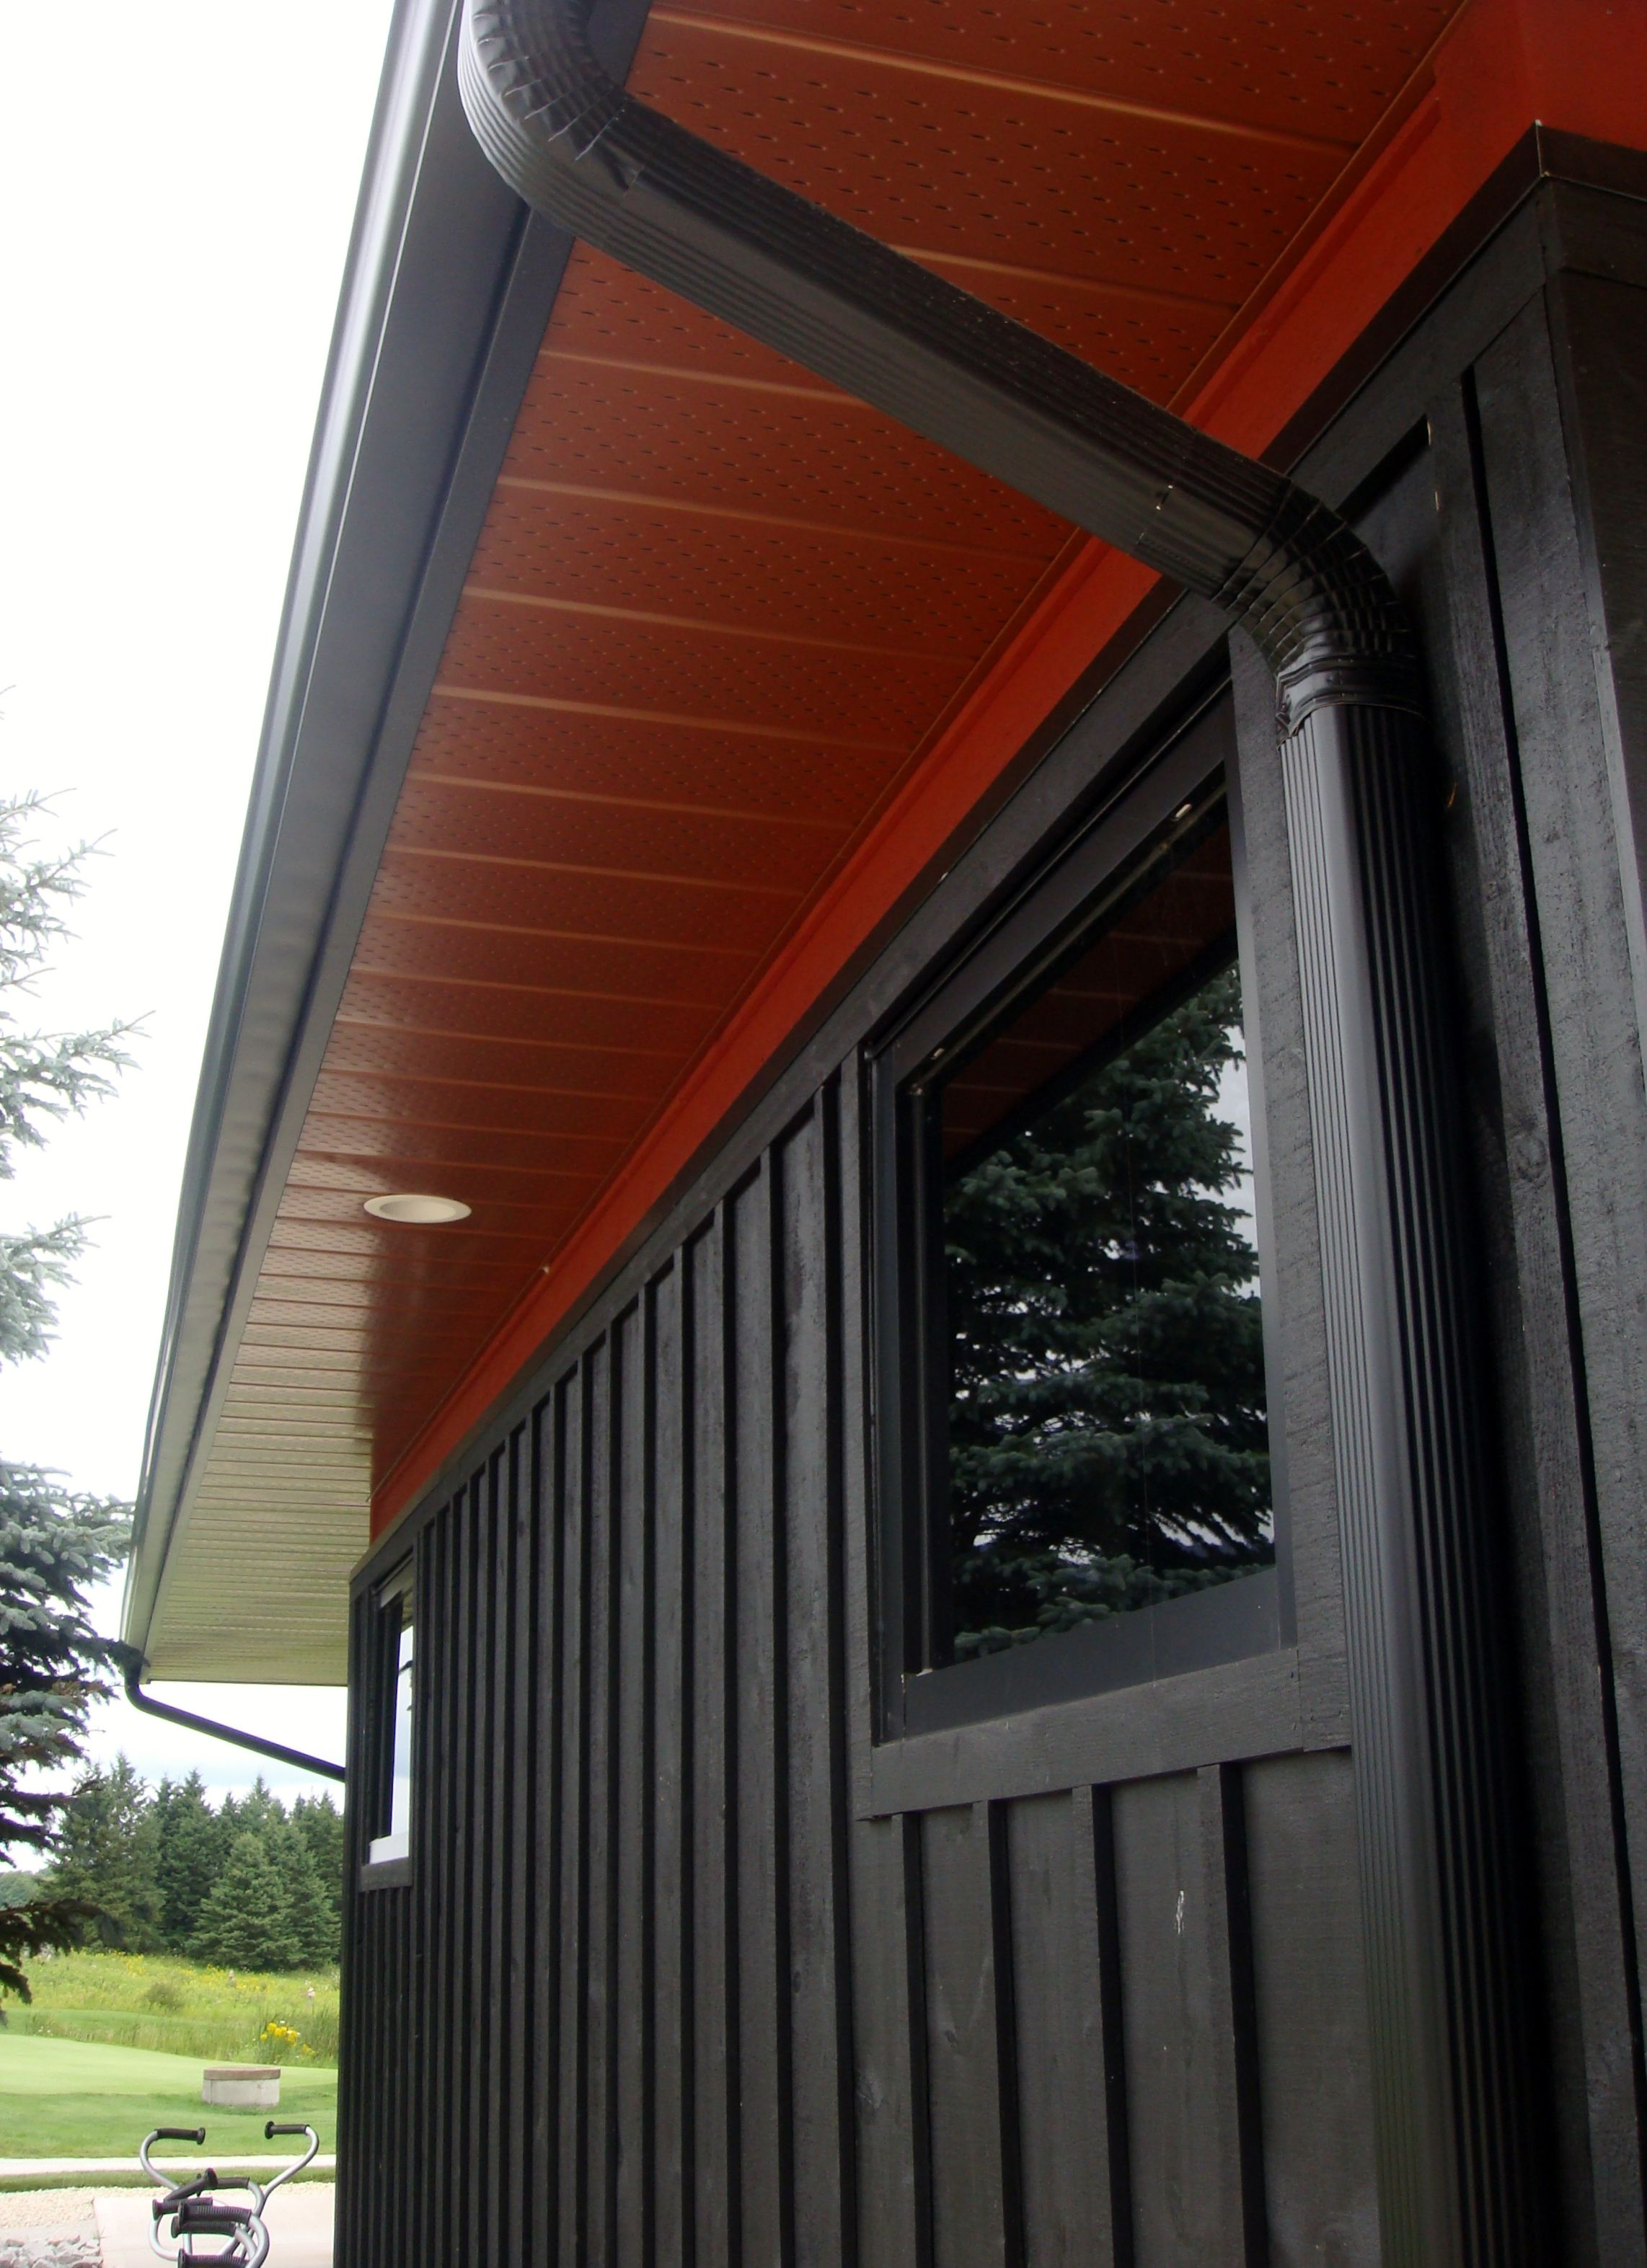 Board Batten Siding With Aluminum Soffit Fascia And Trough House Designs Exterior Siding Styles House Design